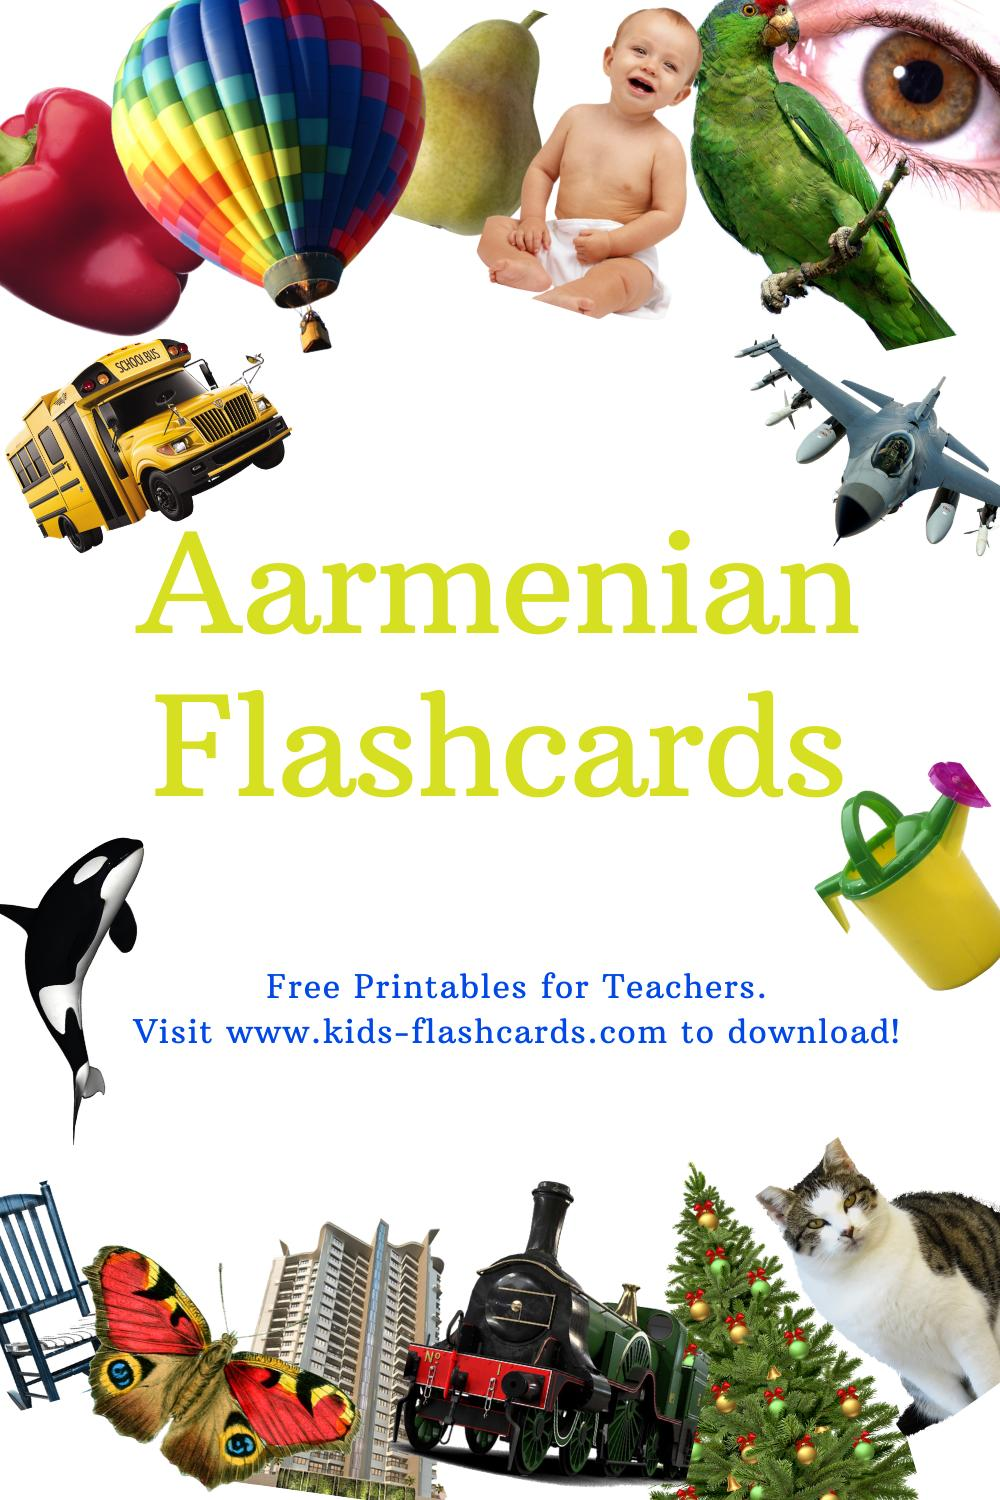 Worksheets to learn Armenian language